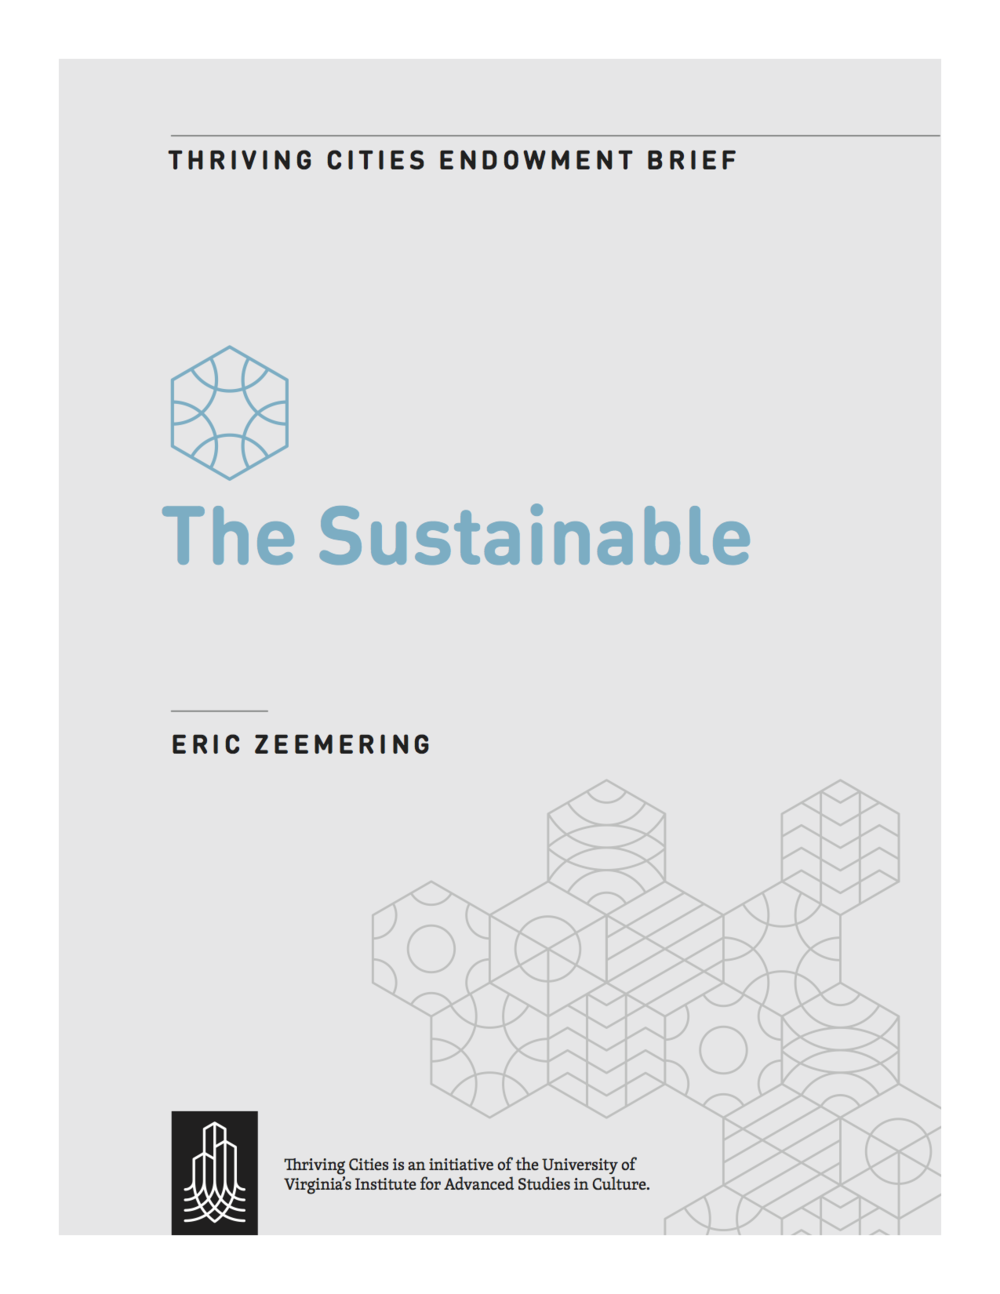 Endowment-Brief-The-Sustainable_0.png